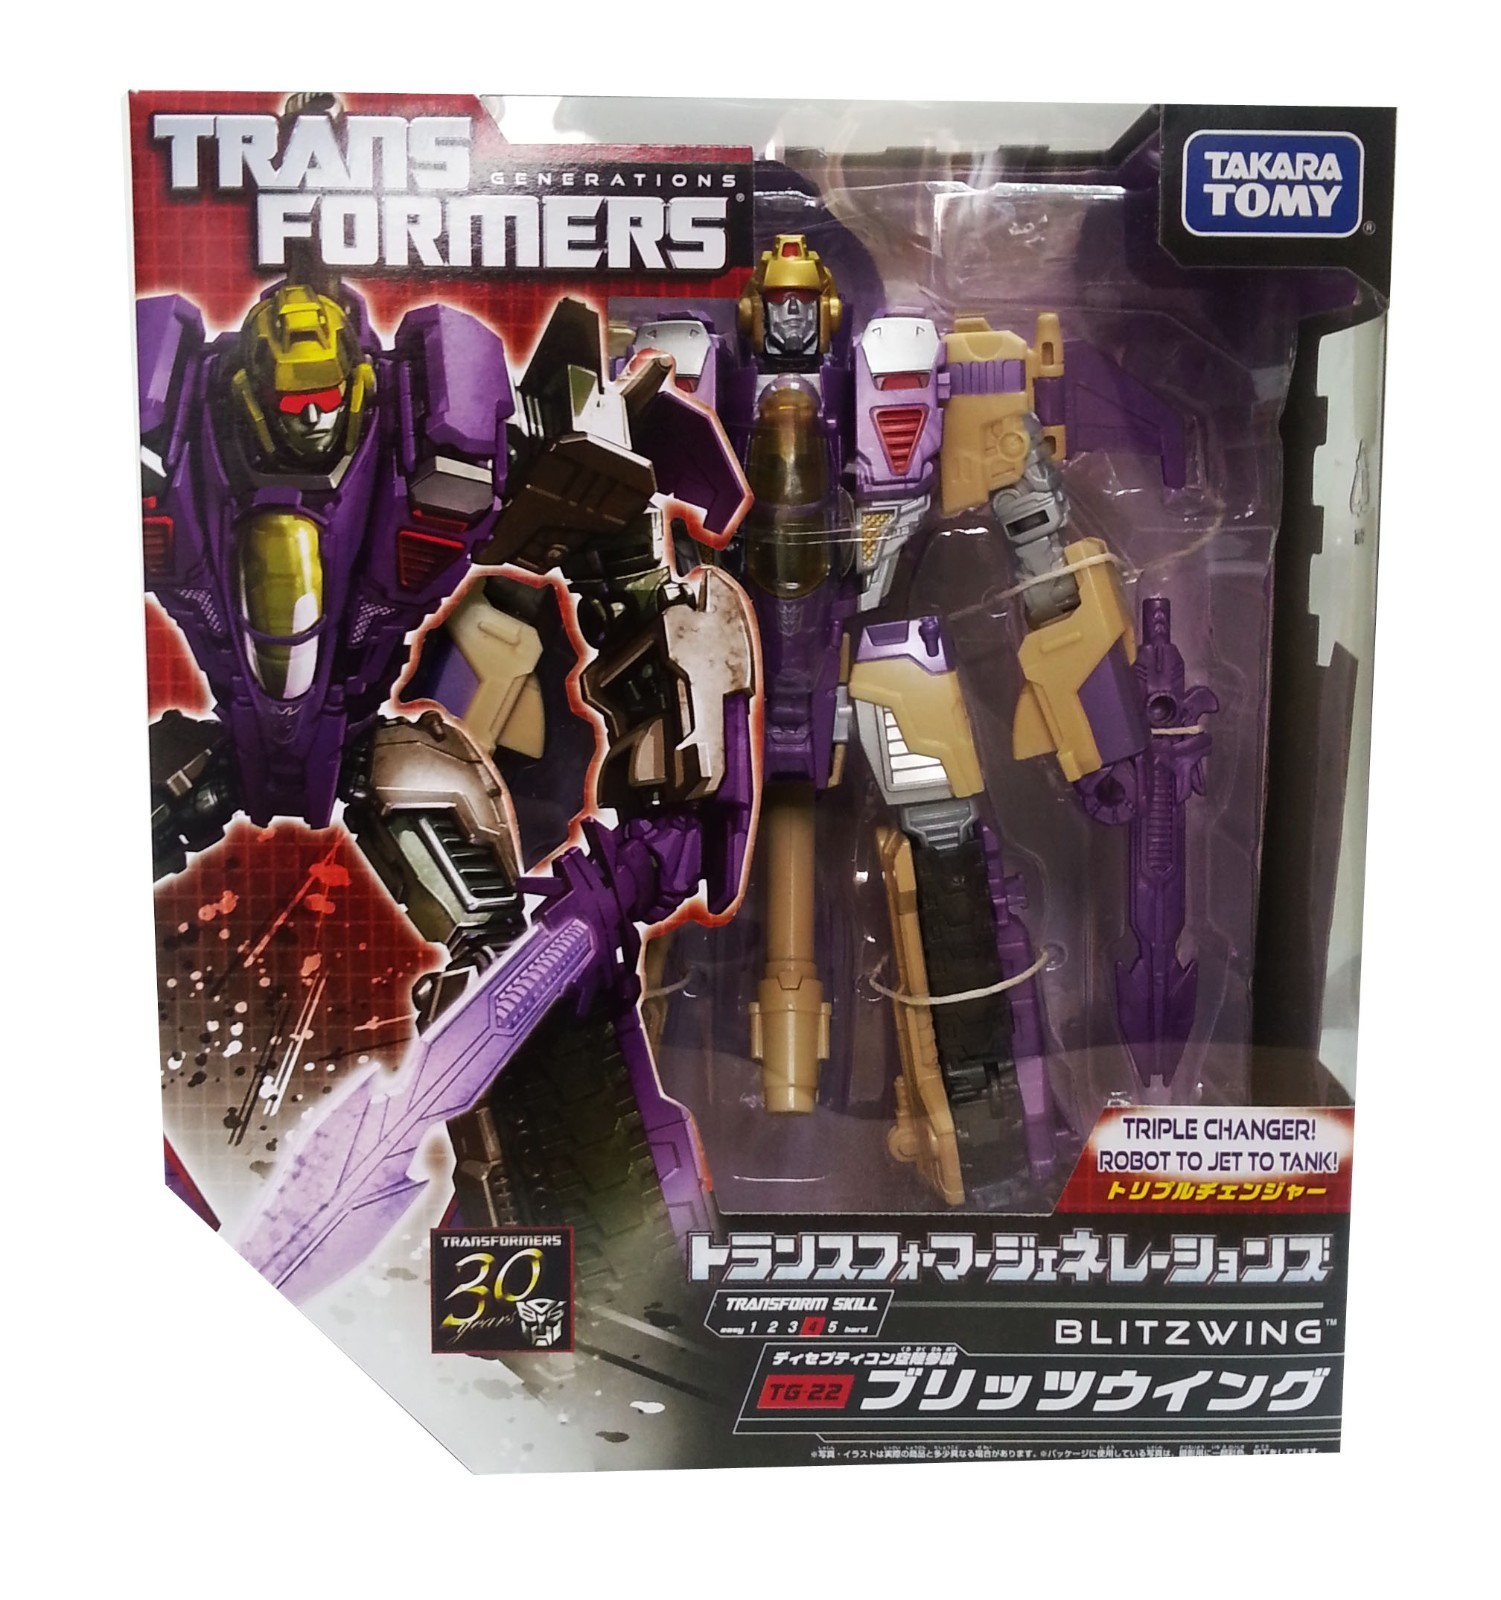 Takara Tomy Transformers Generations TG-22 Blitzwing